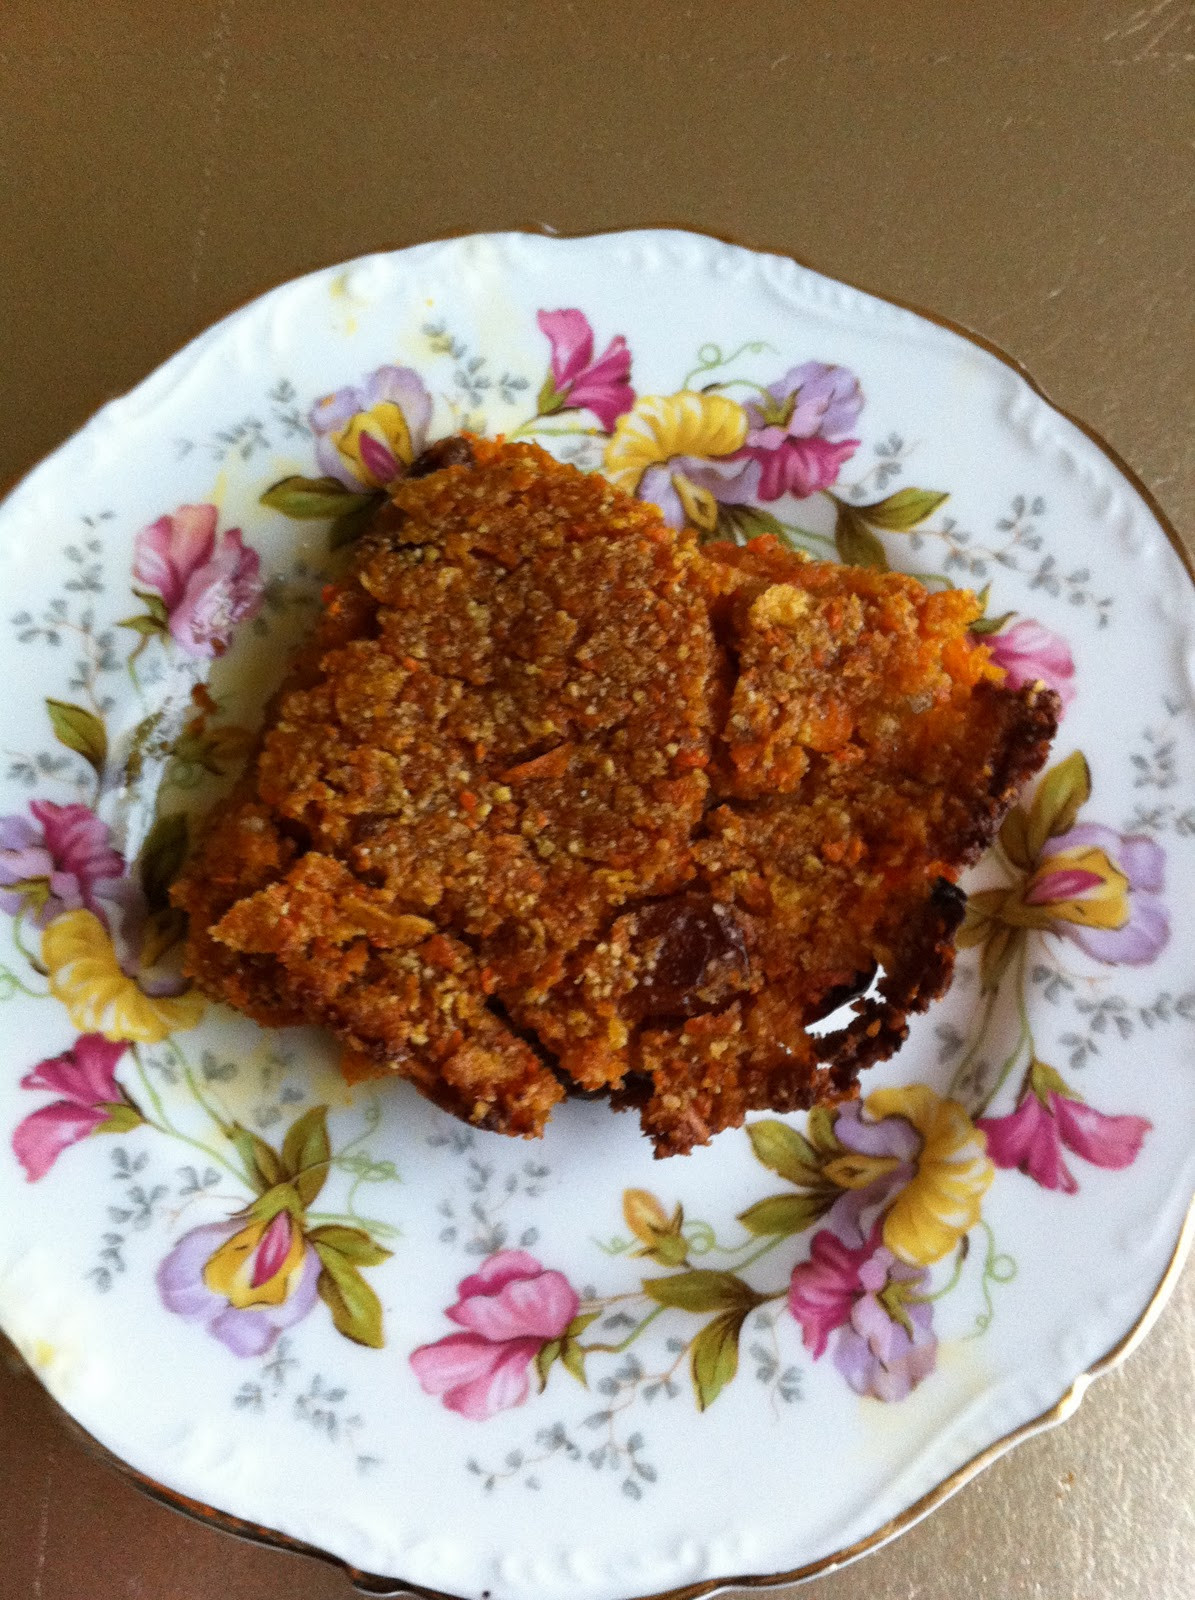 Vegan Passover Dessert Recipes  Passover Sweet Potato Kugel – Lisa s Project Vegan